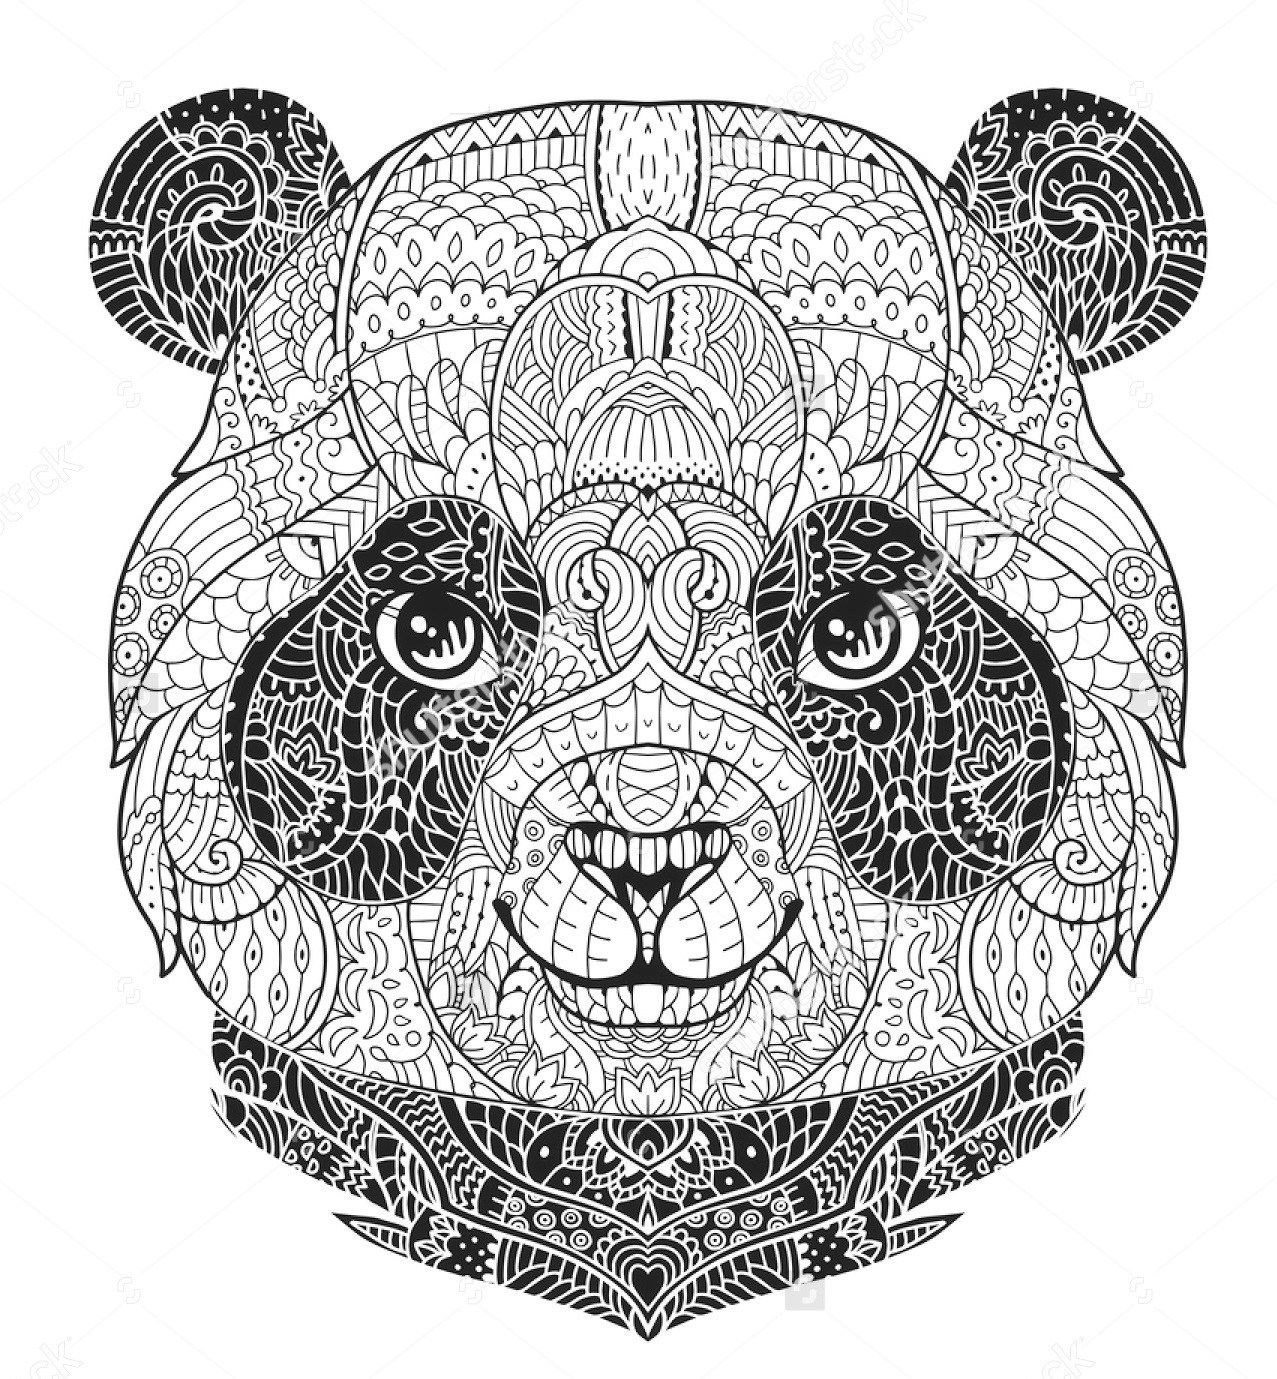 coloring pages of pandas panda coloring pages for adults coloring home of pages pandas coloring